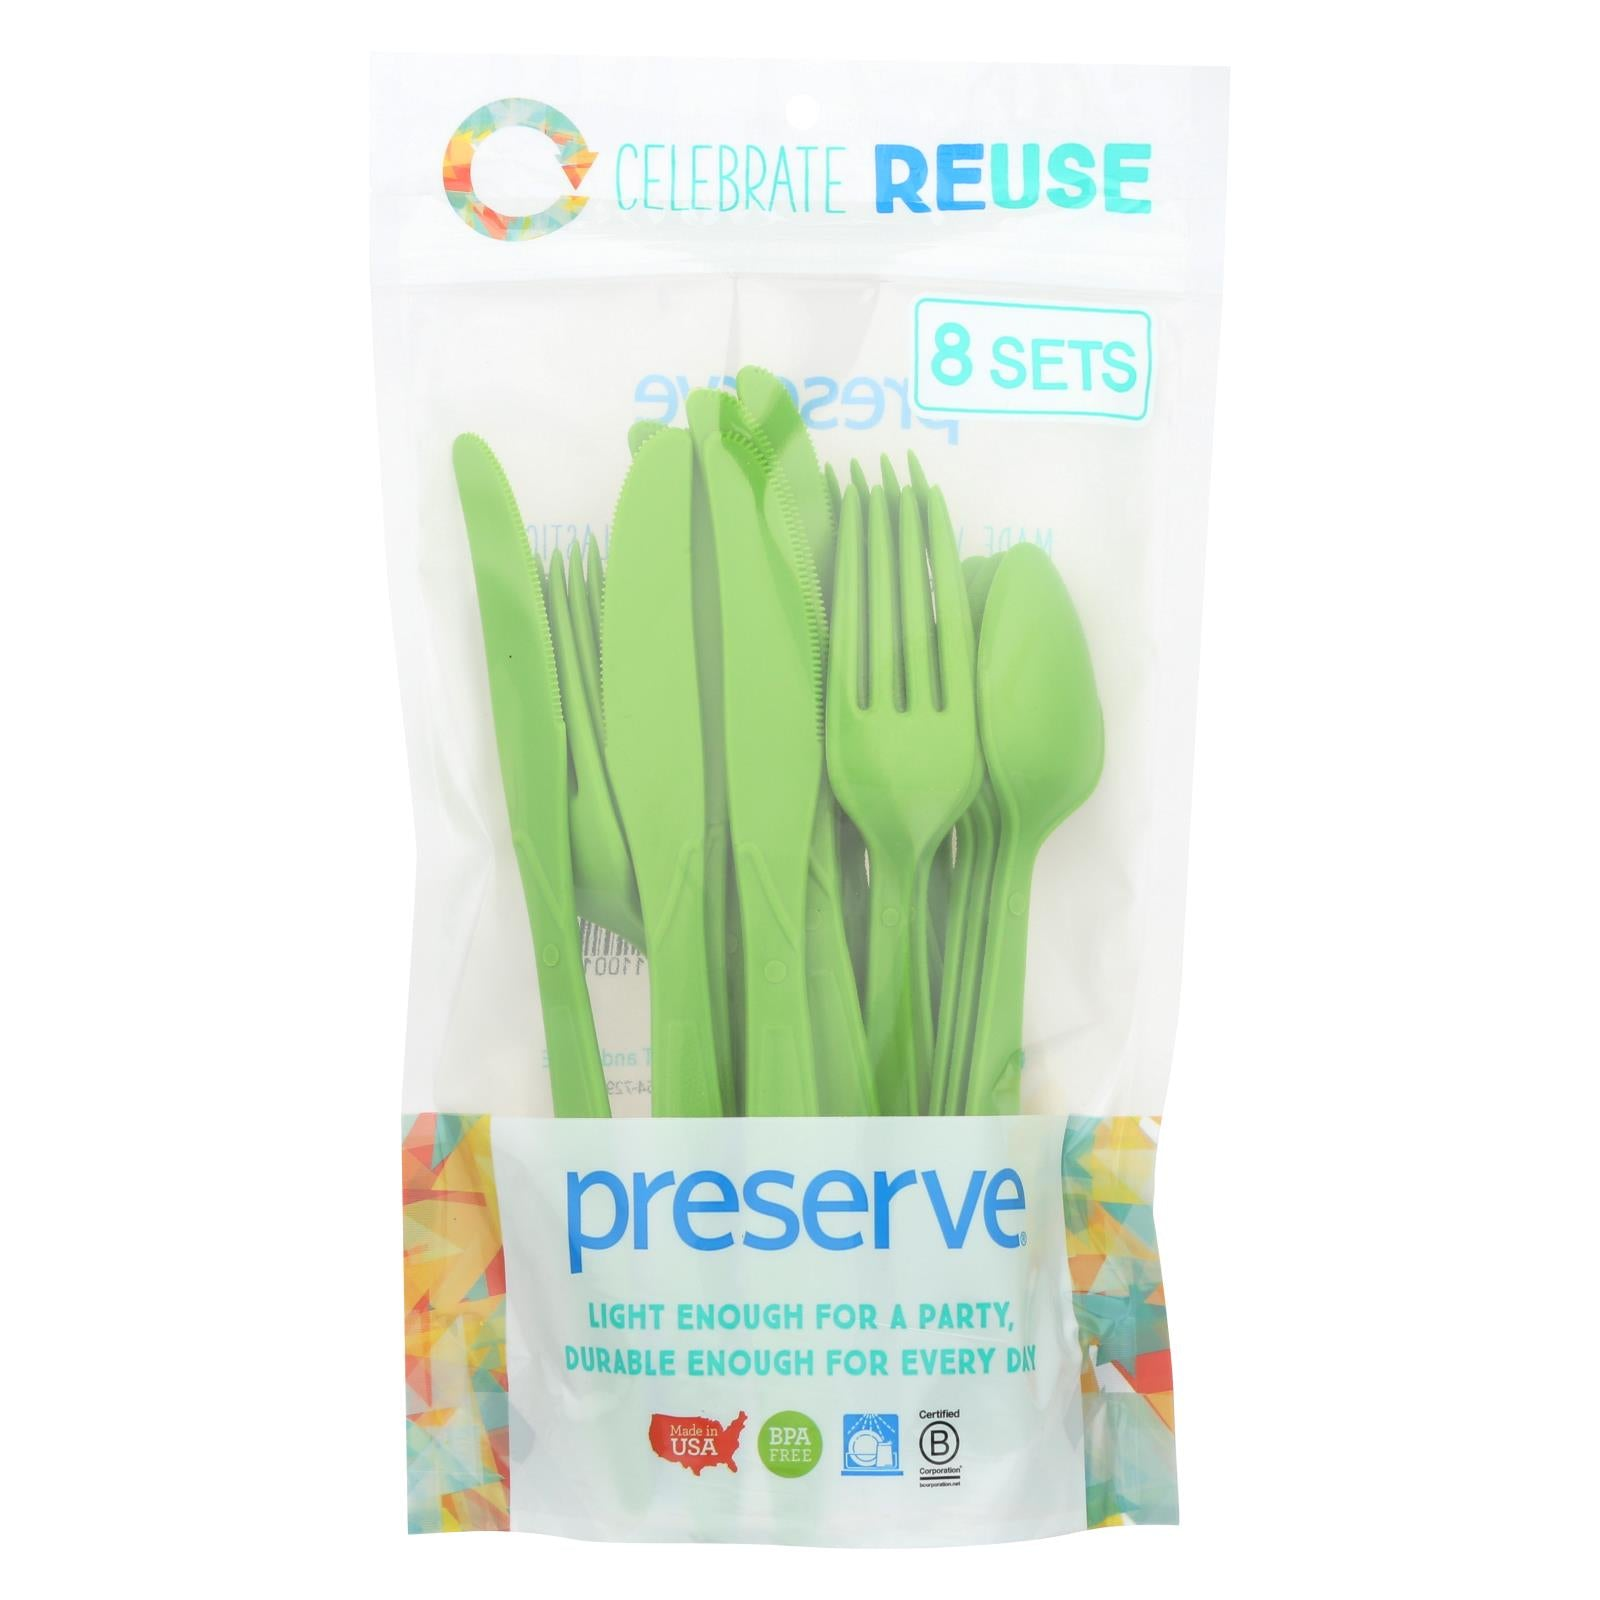 Buy Preserve Heavy Duty Cutlery - Apple Green - 8 Sets 24 Pieces total - Tableware from Veroeco.com